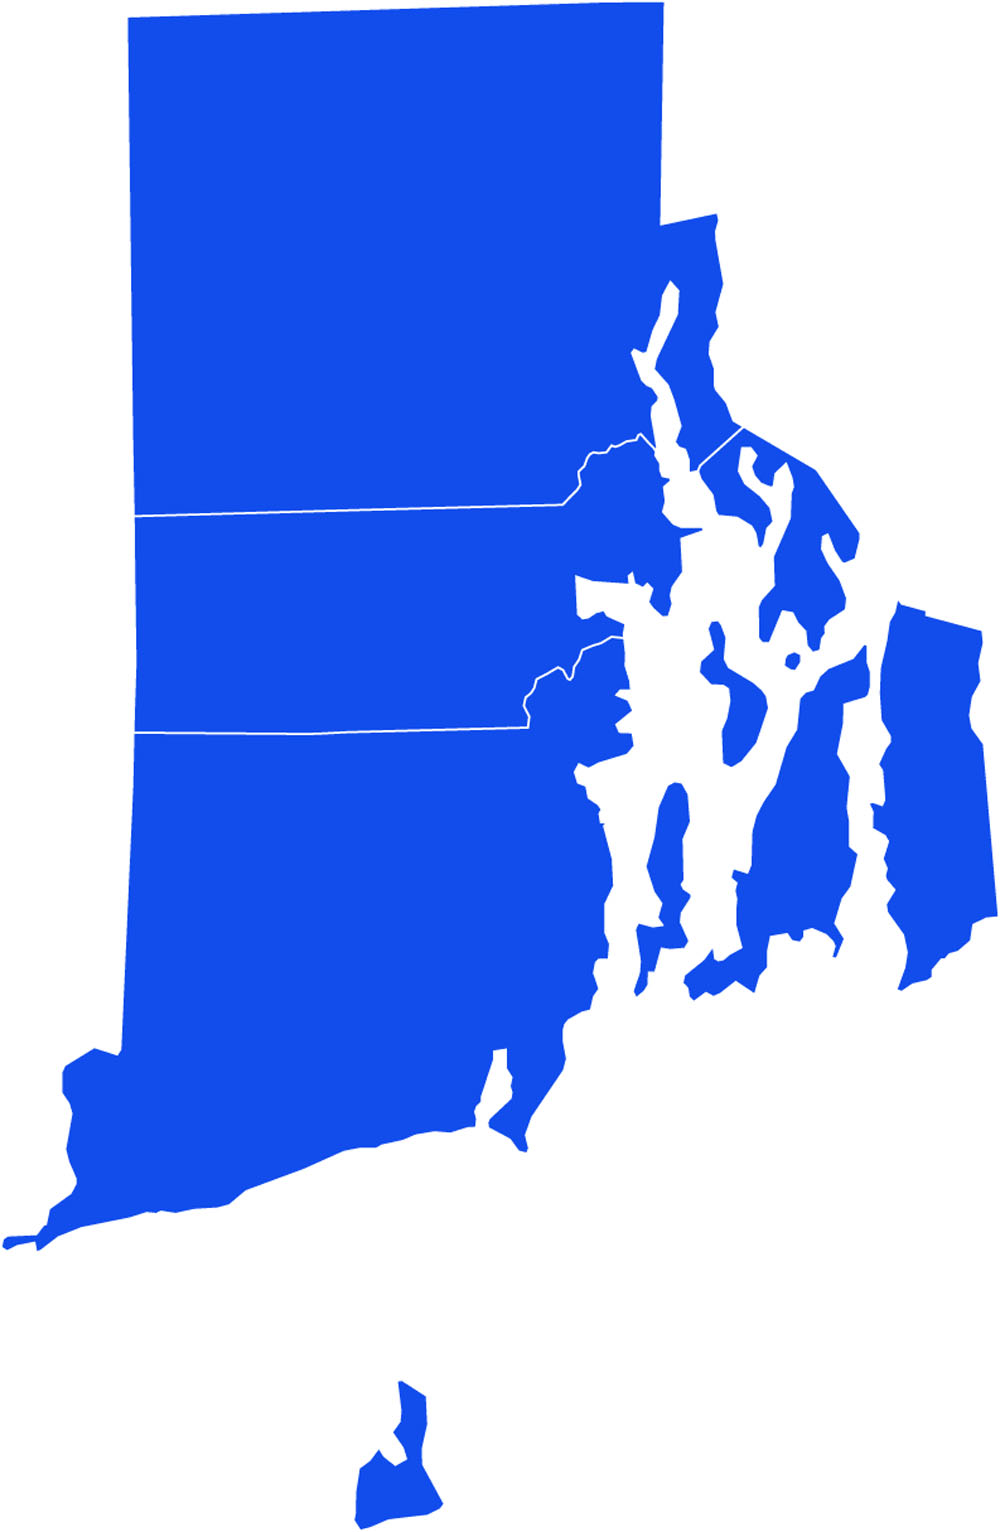 Rhode Island graphic